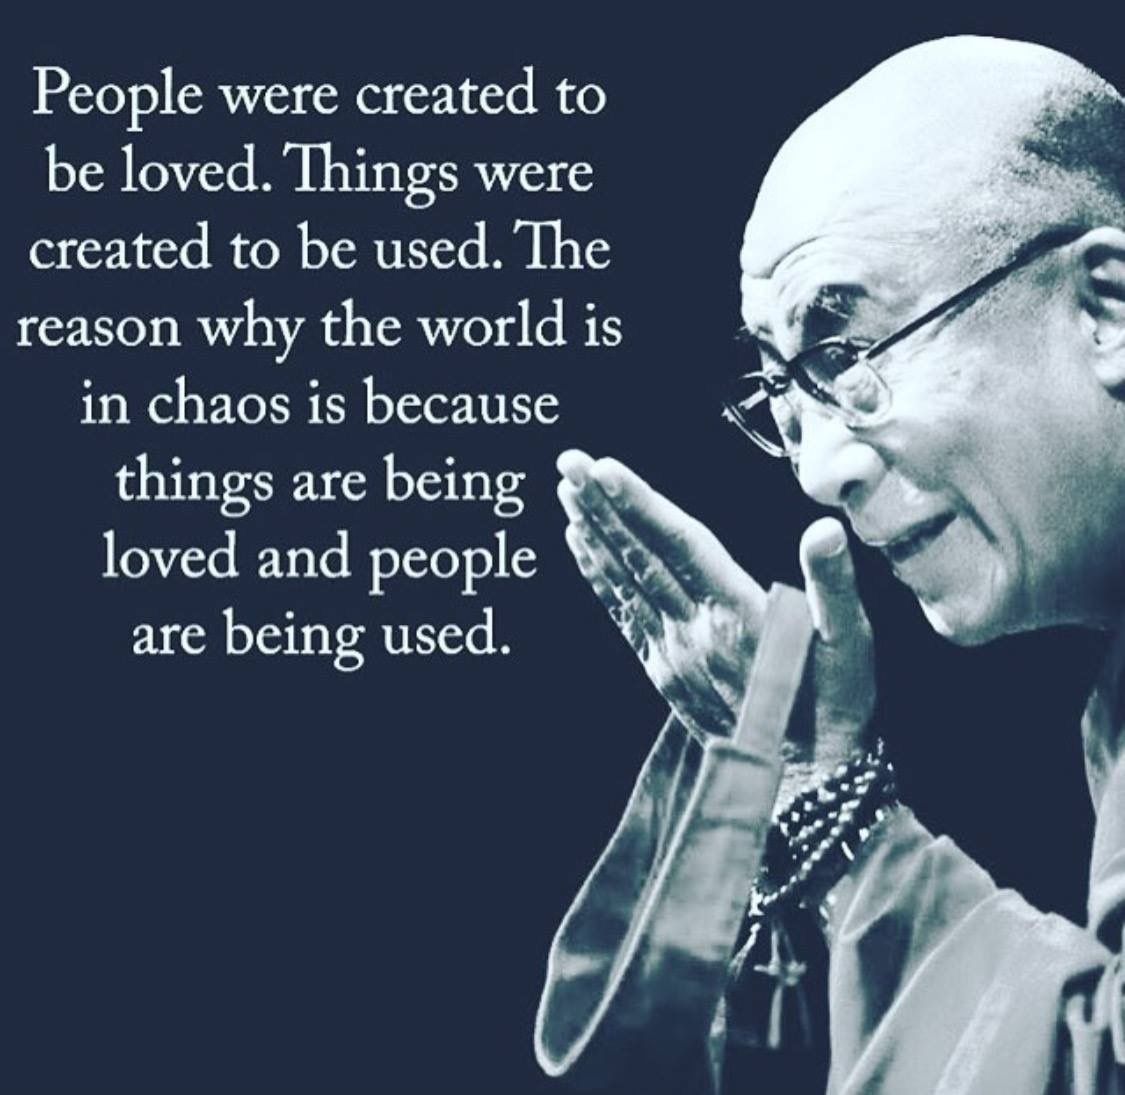 Buddhist Quotes On Love Pinalice Ebersole On Misc  Pinterest  Dalai Lama Wisdom And